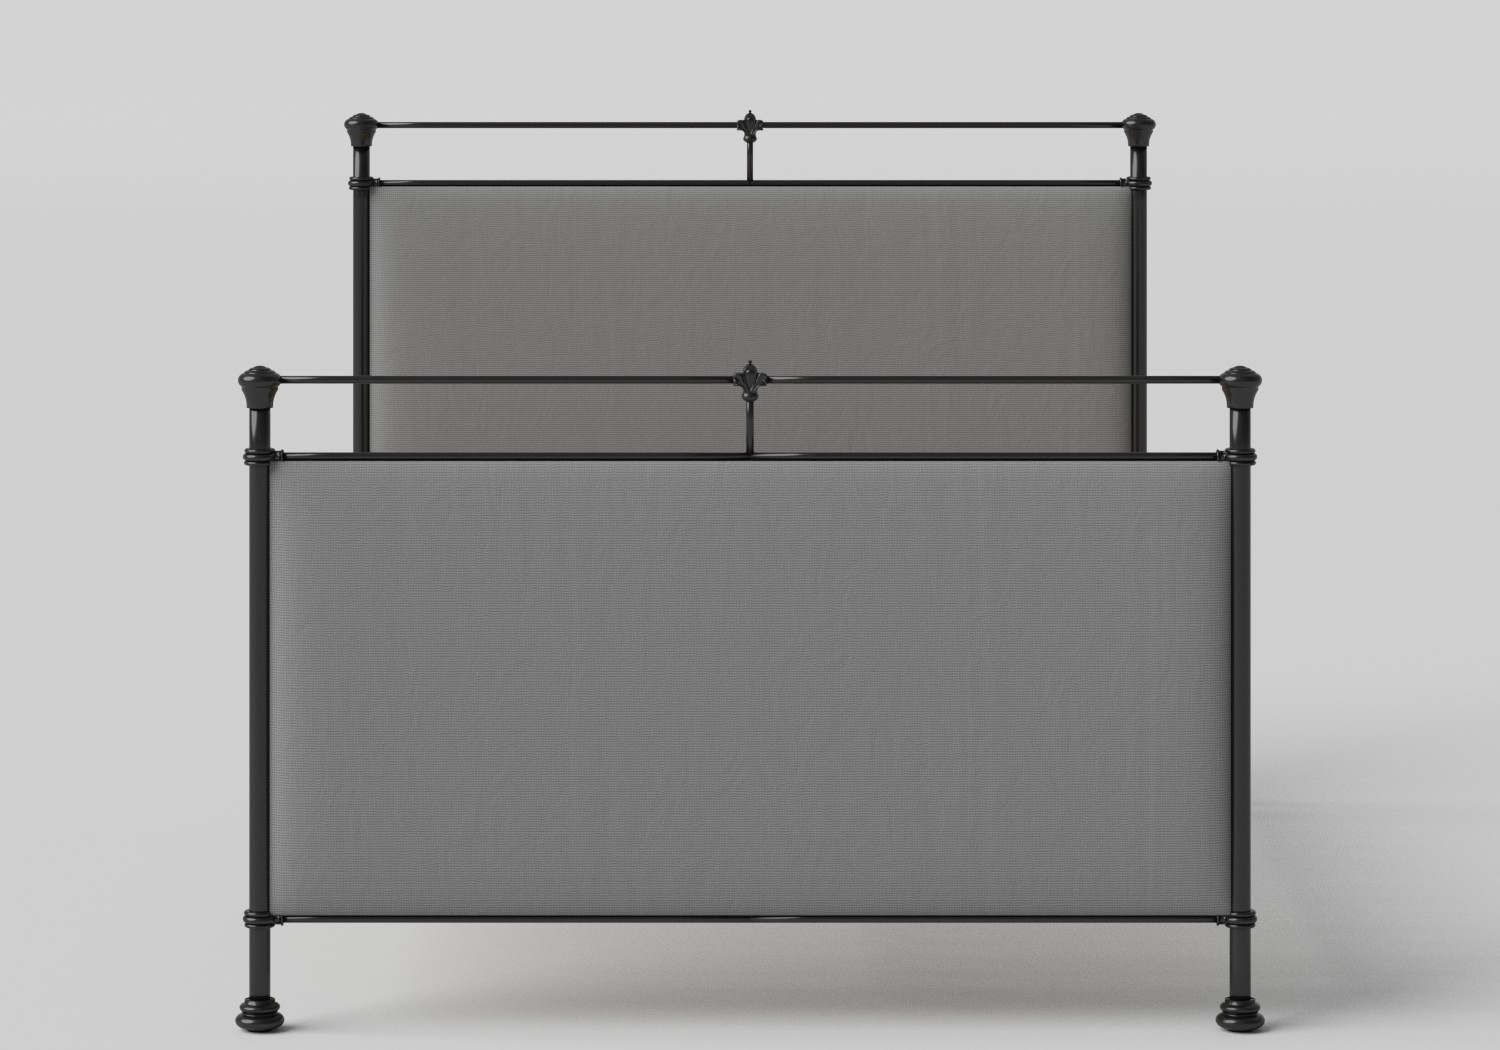 Lille Iron/Metal Upholstered Bed in Satin Black with Grey fabric and slatted frame